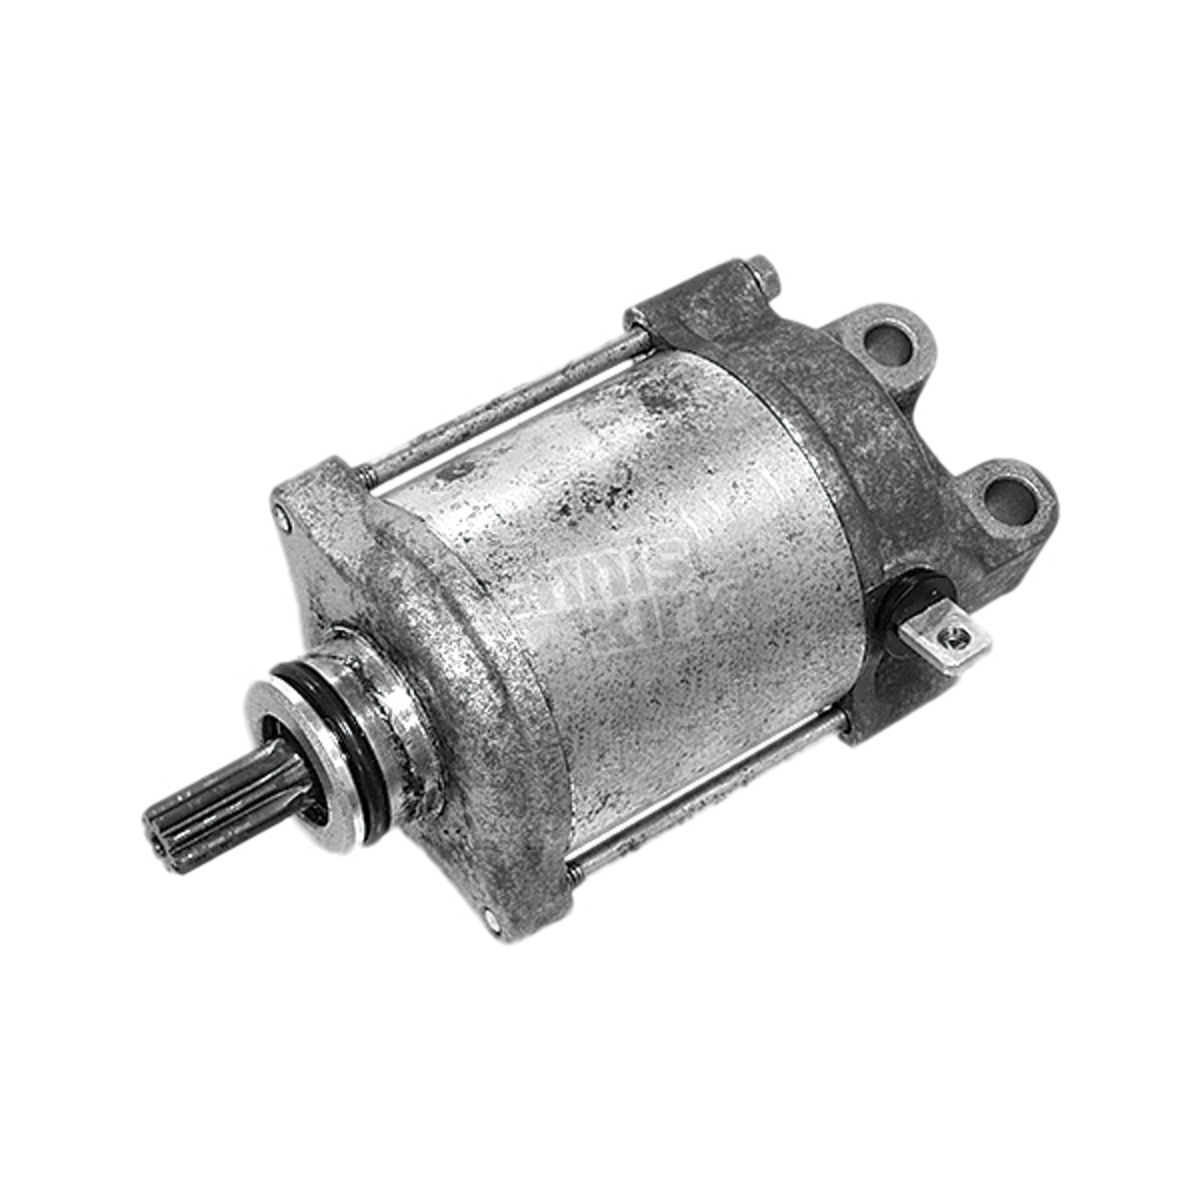 Sports parts inc starter motor sm 01317 snowmobile for Nhd inc motor starter